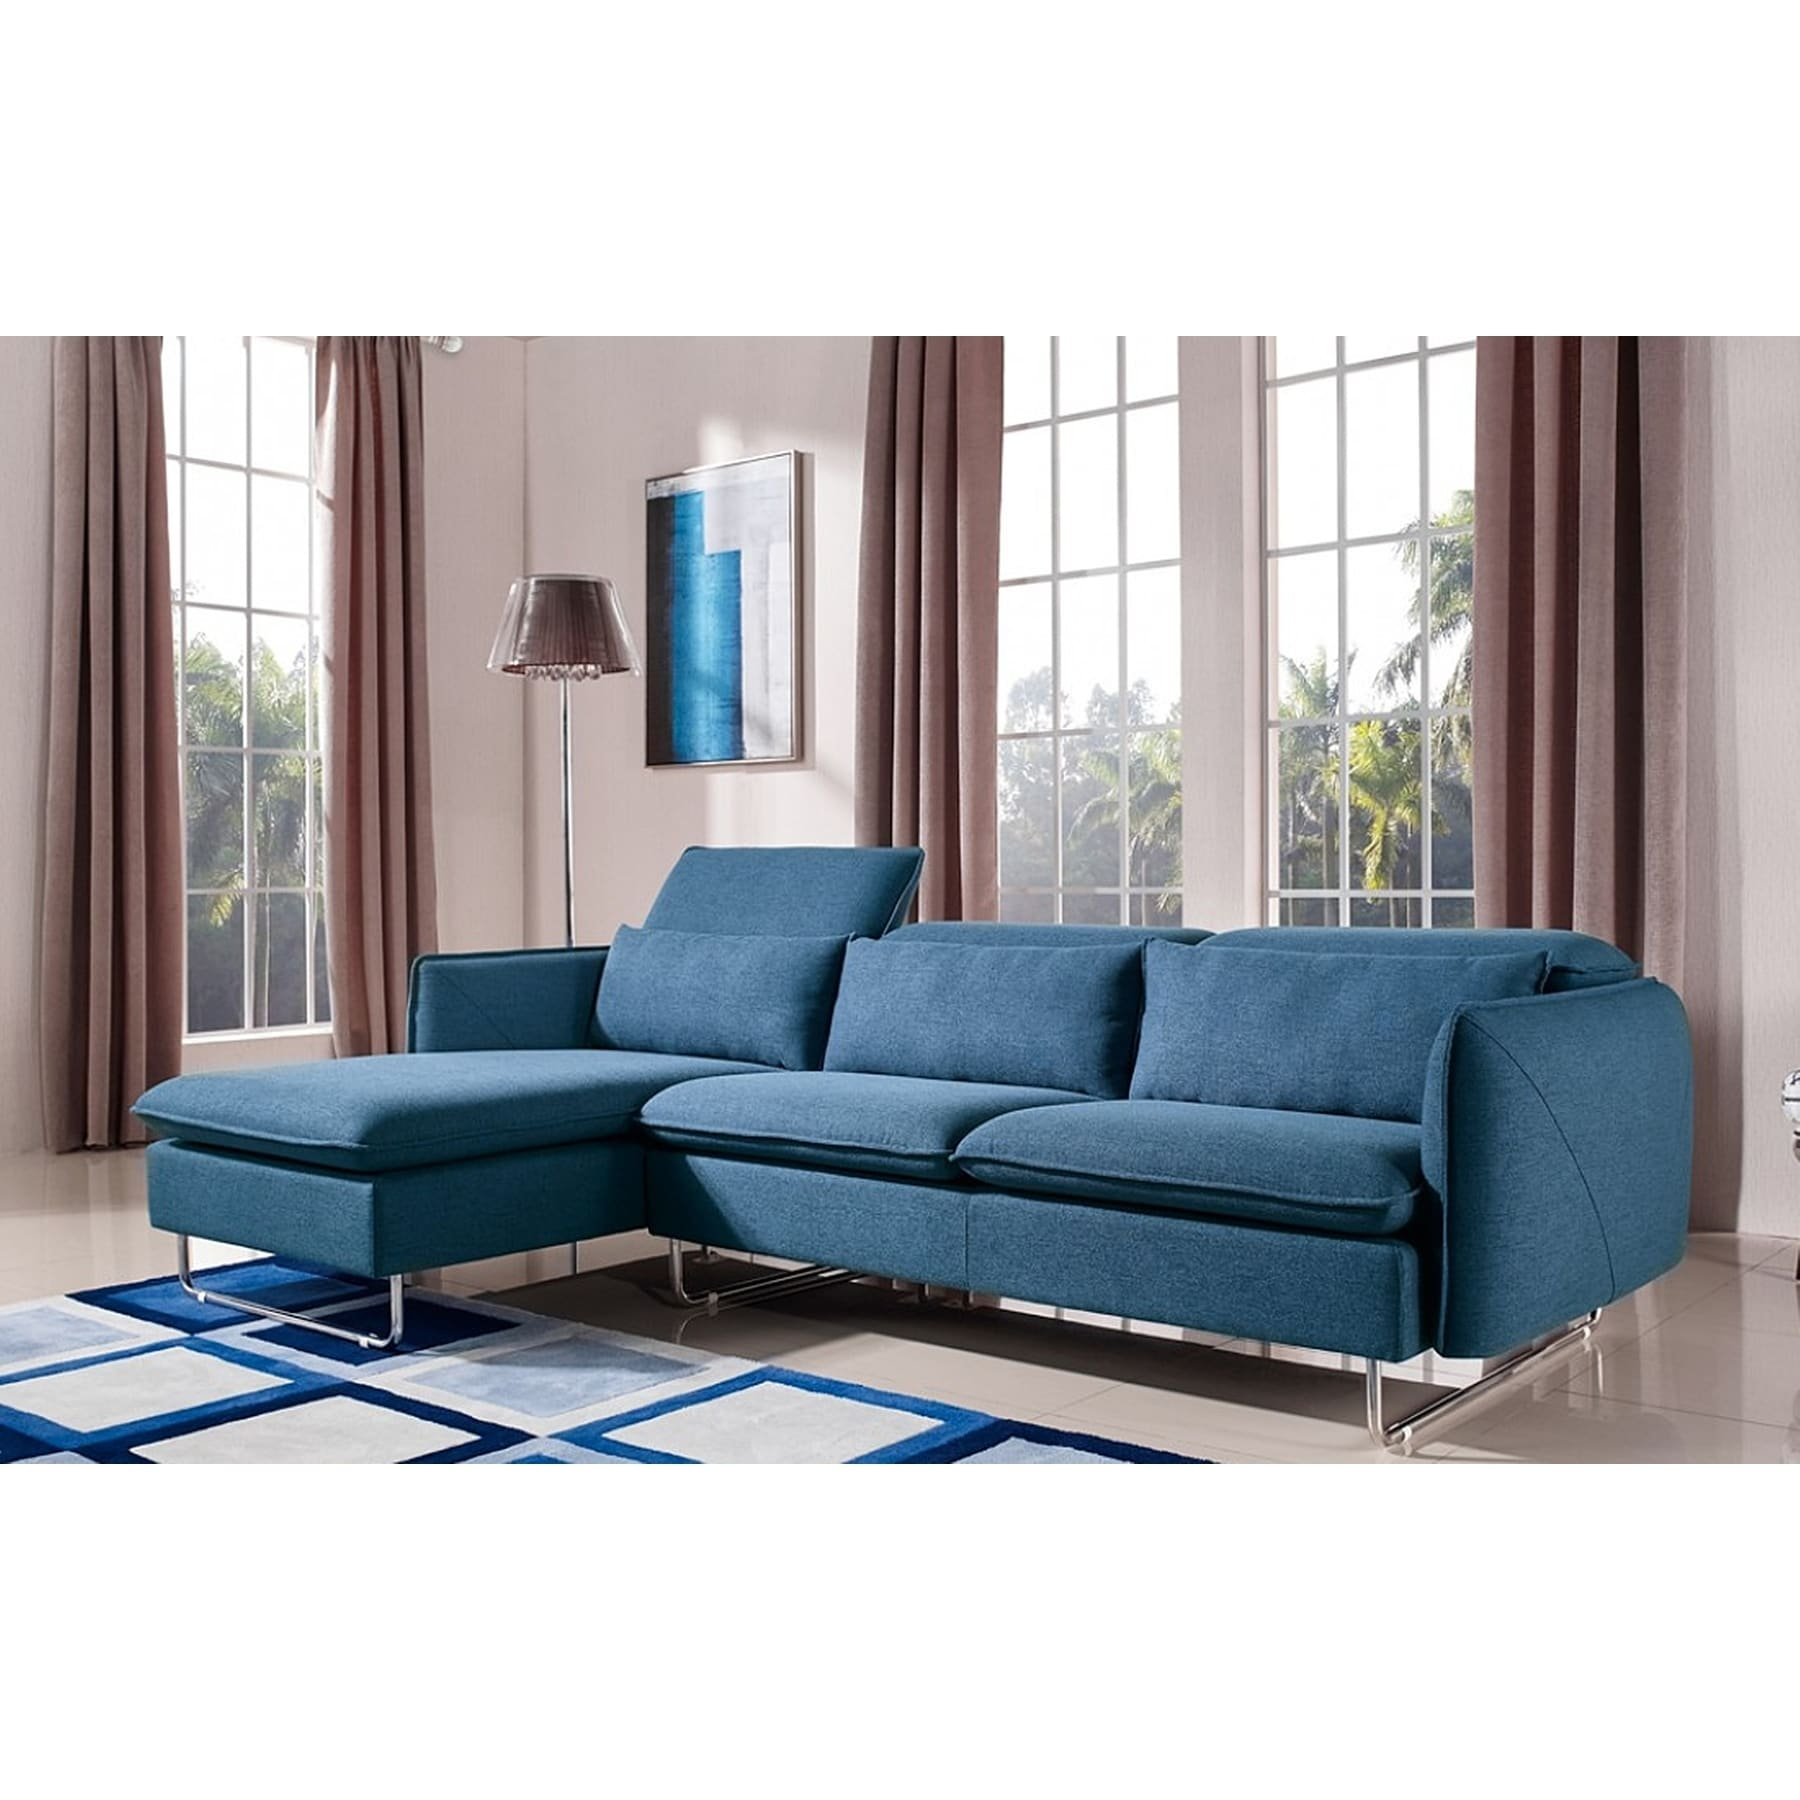 Shop Saphire Elegant Classic Blue Fabric Sofa with Left Facing ...